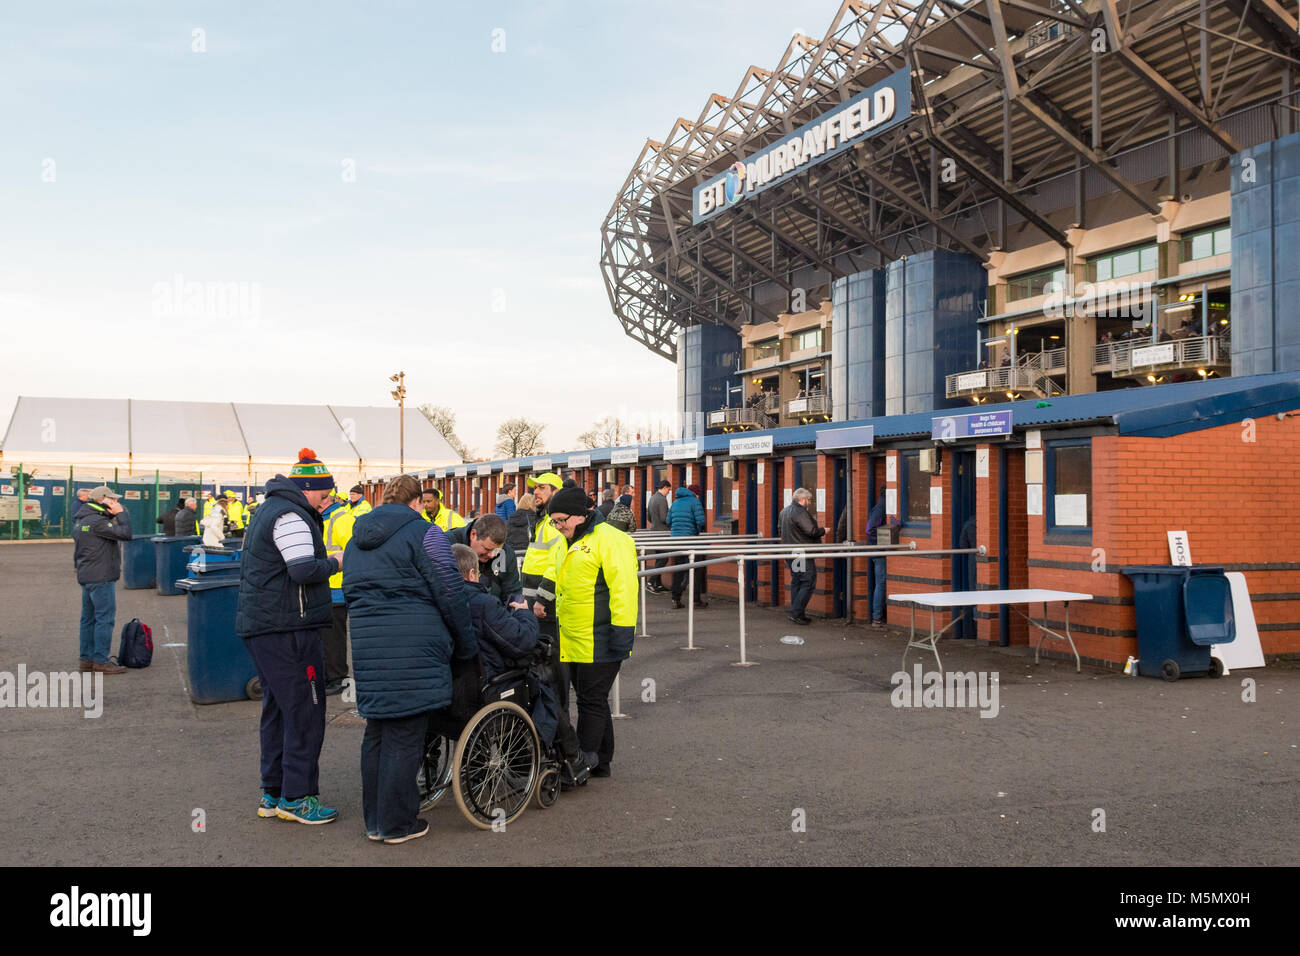 Disabled spectator in wheelchair outside BT Murrayfield Stadium for the England Scotland Six Nations Rugby game - Stock Image